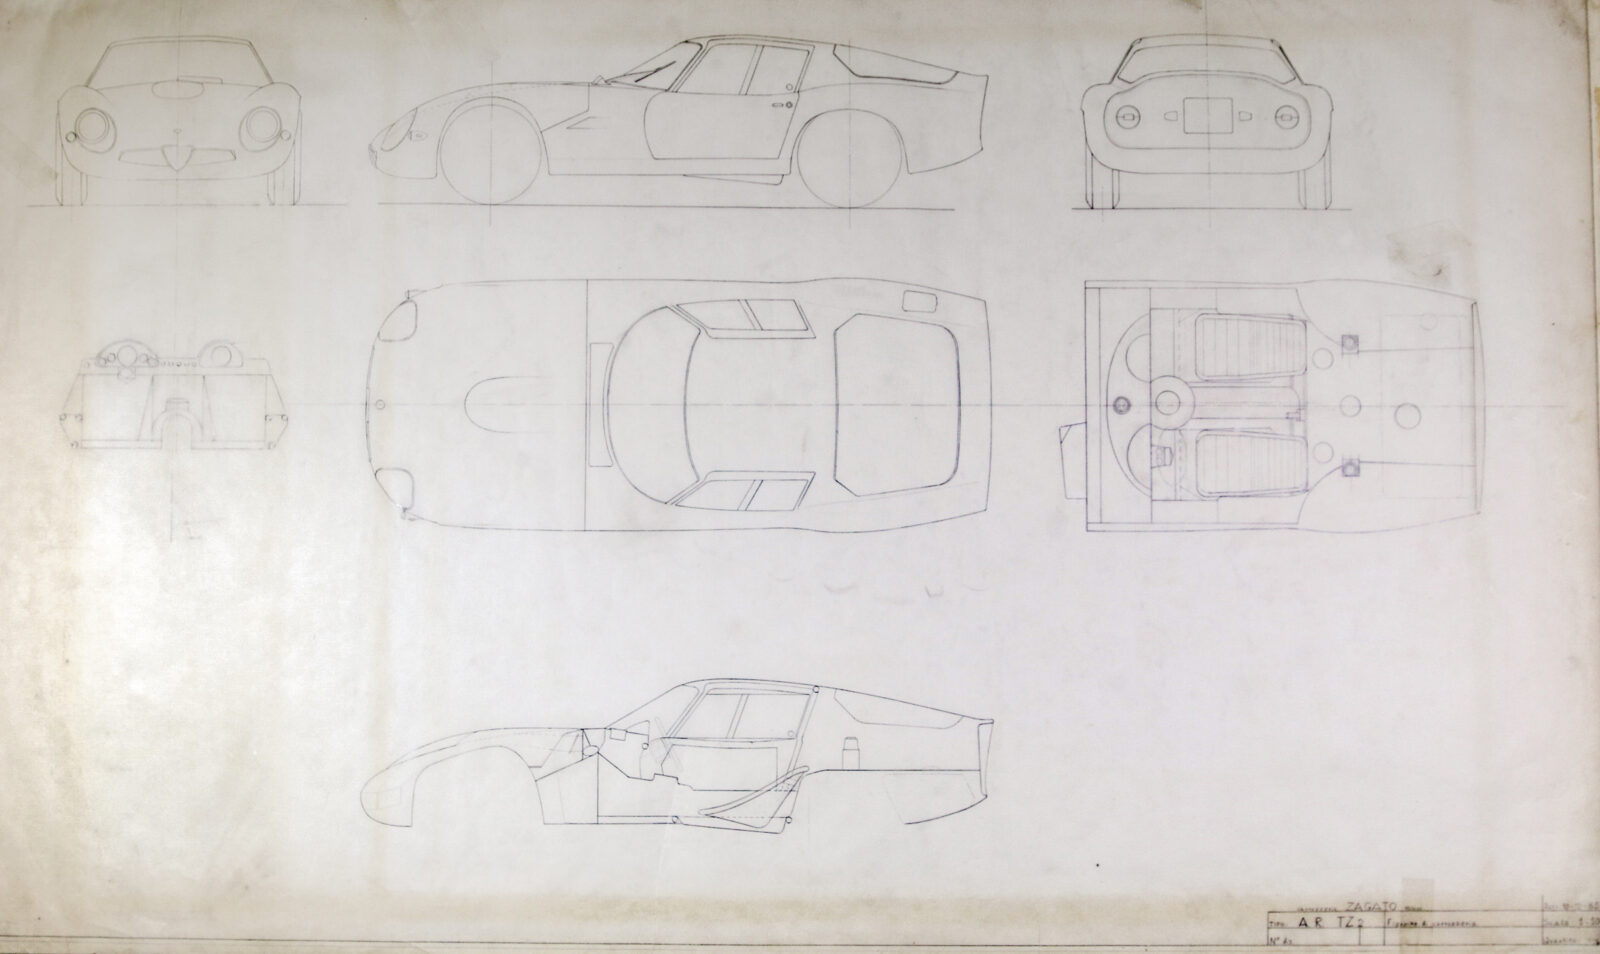 Blueprints of the Alfa Romeo Giulia Tubolare Zagato